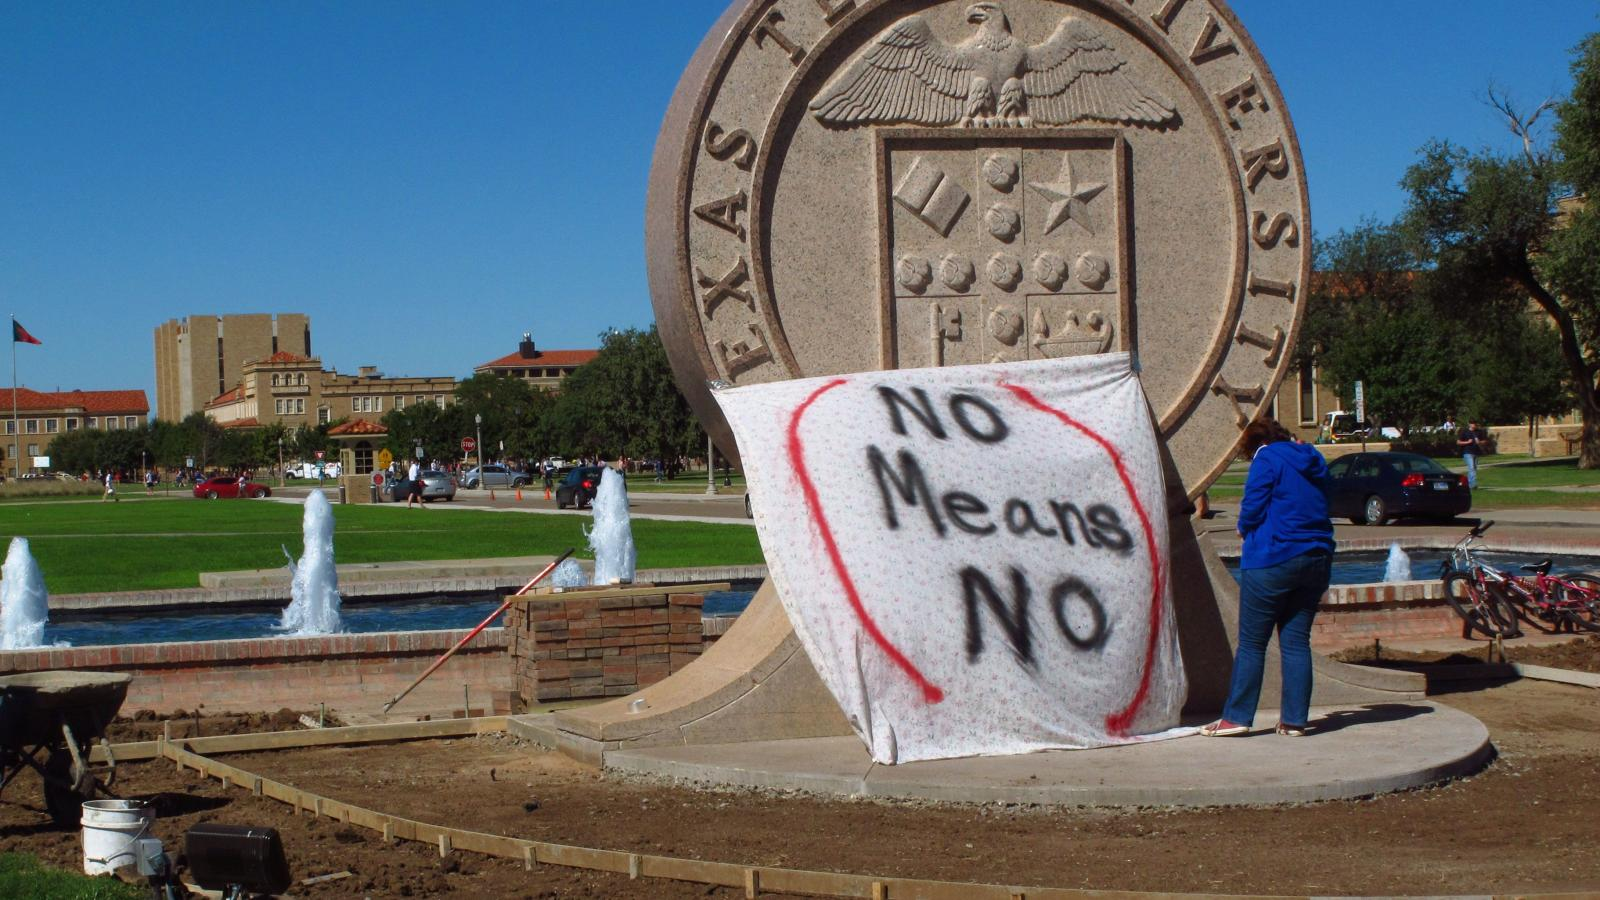 Campus rape: A guide to the debate that's roiling American